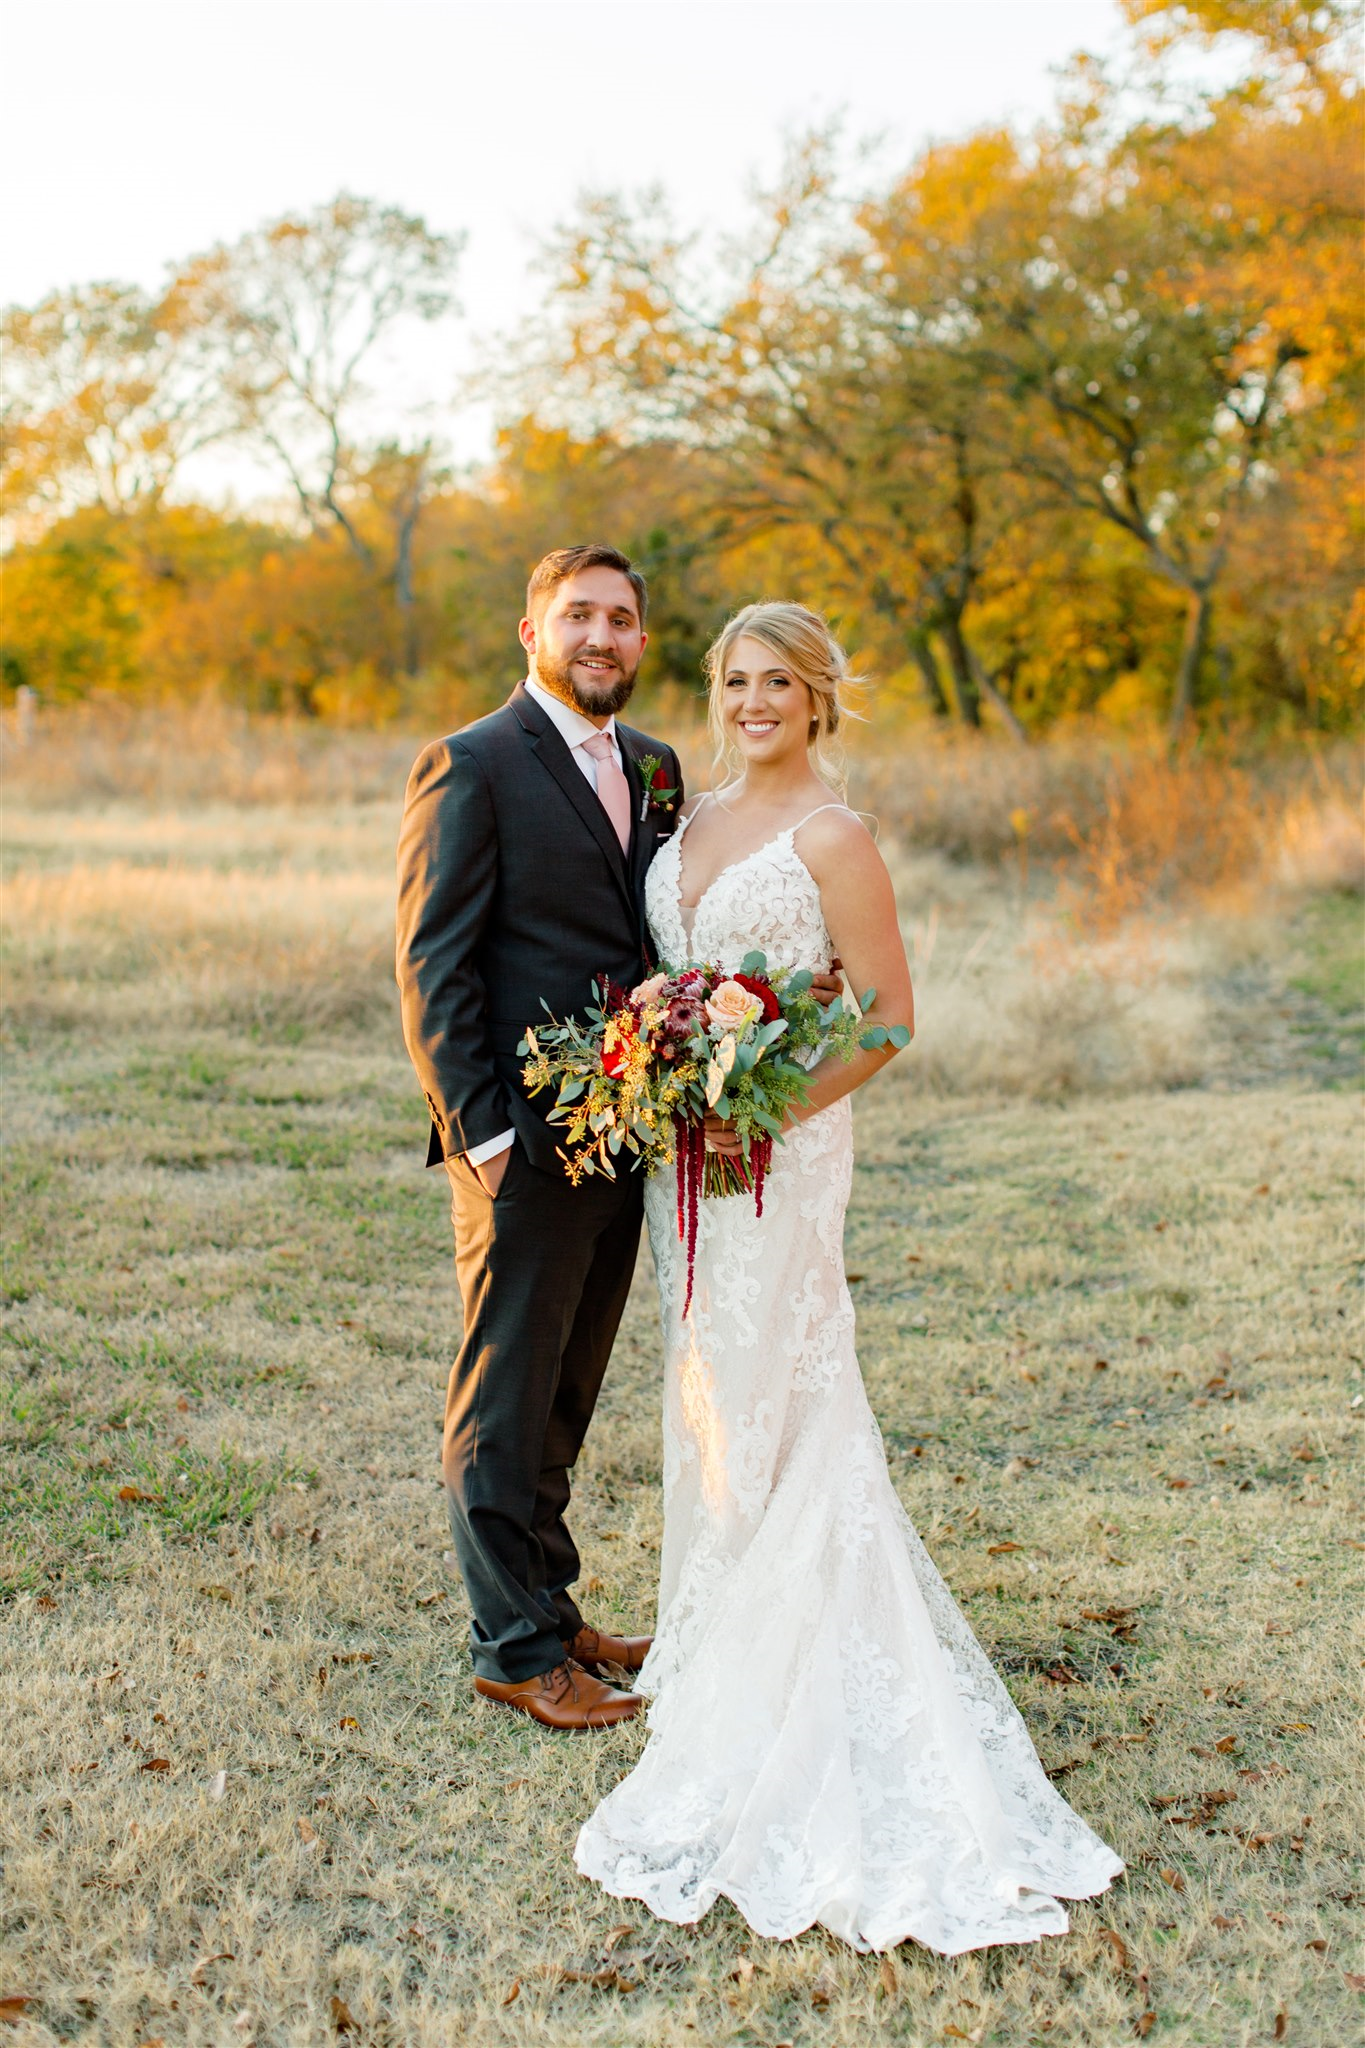 Whitehurst Wedding 03-10-2019